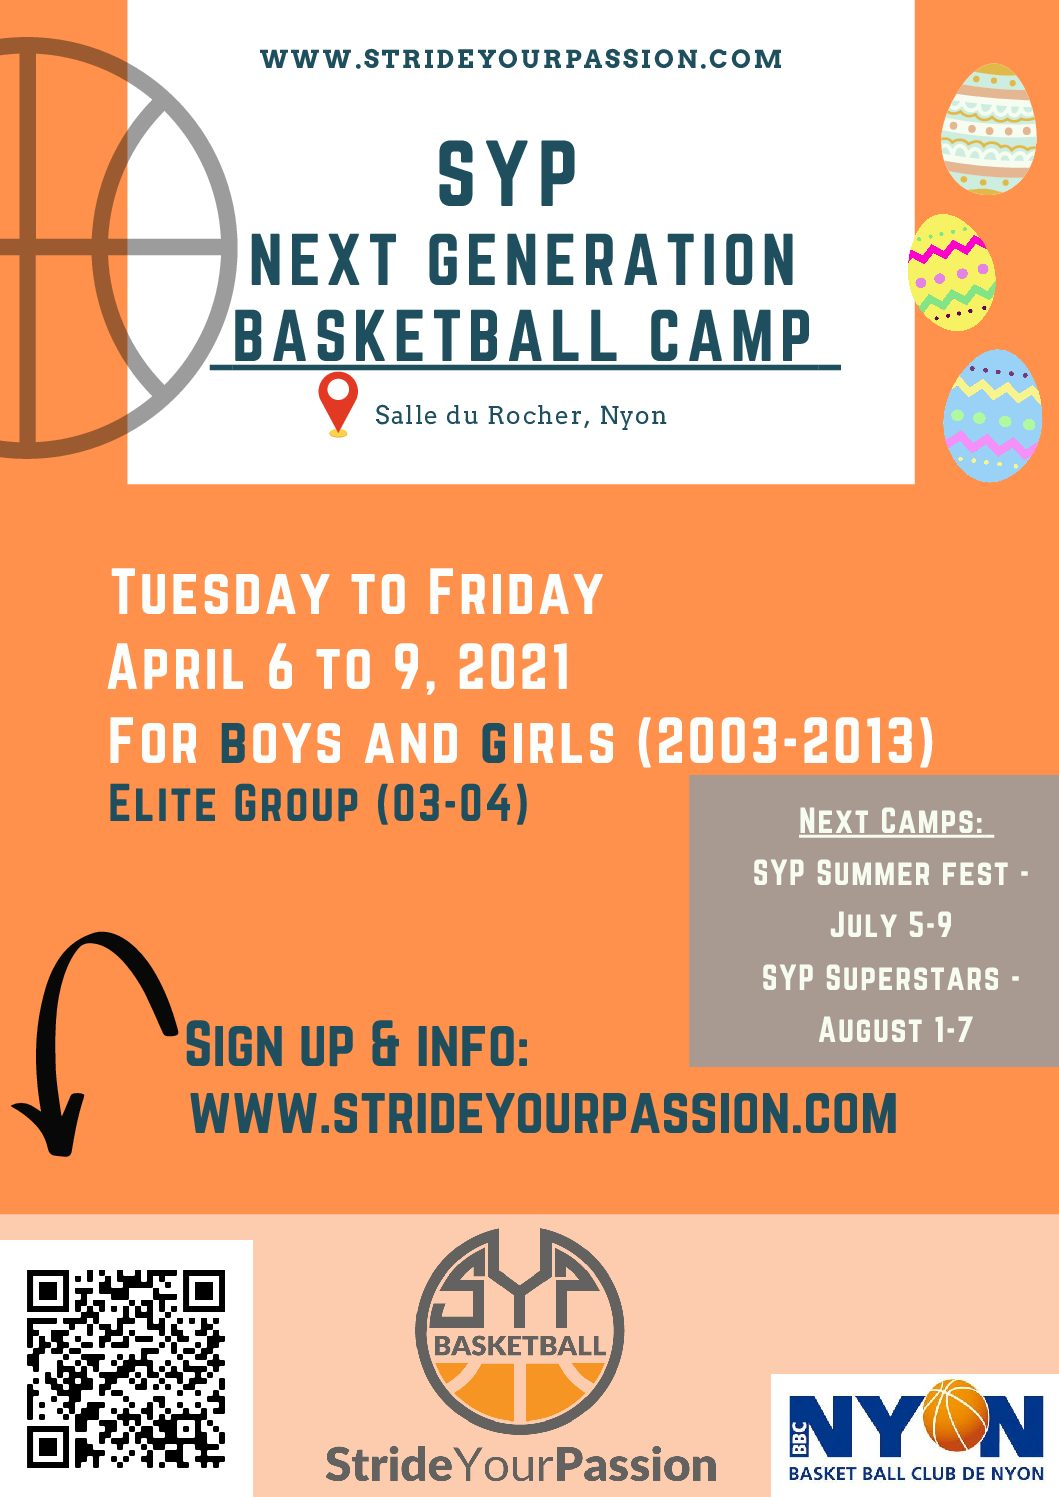 Camps Next generation Stride Your Passion